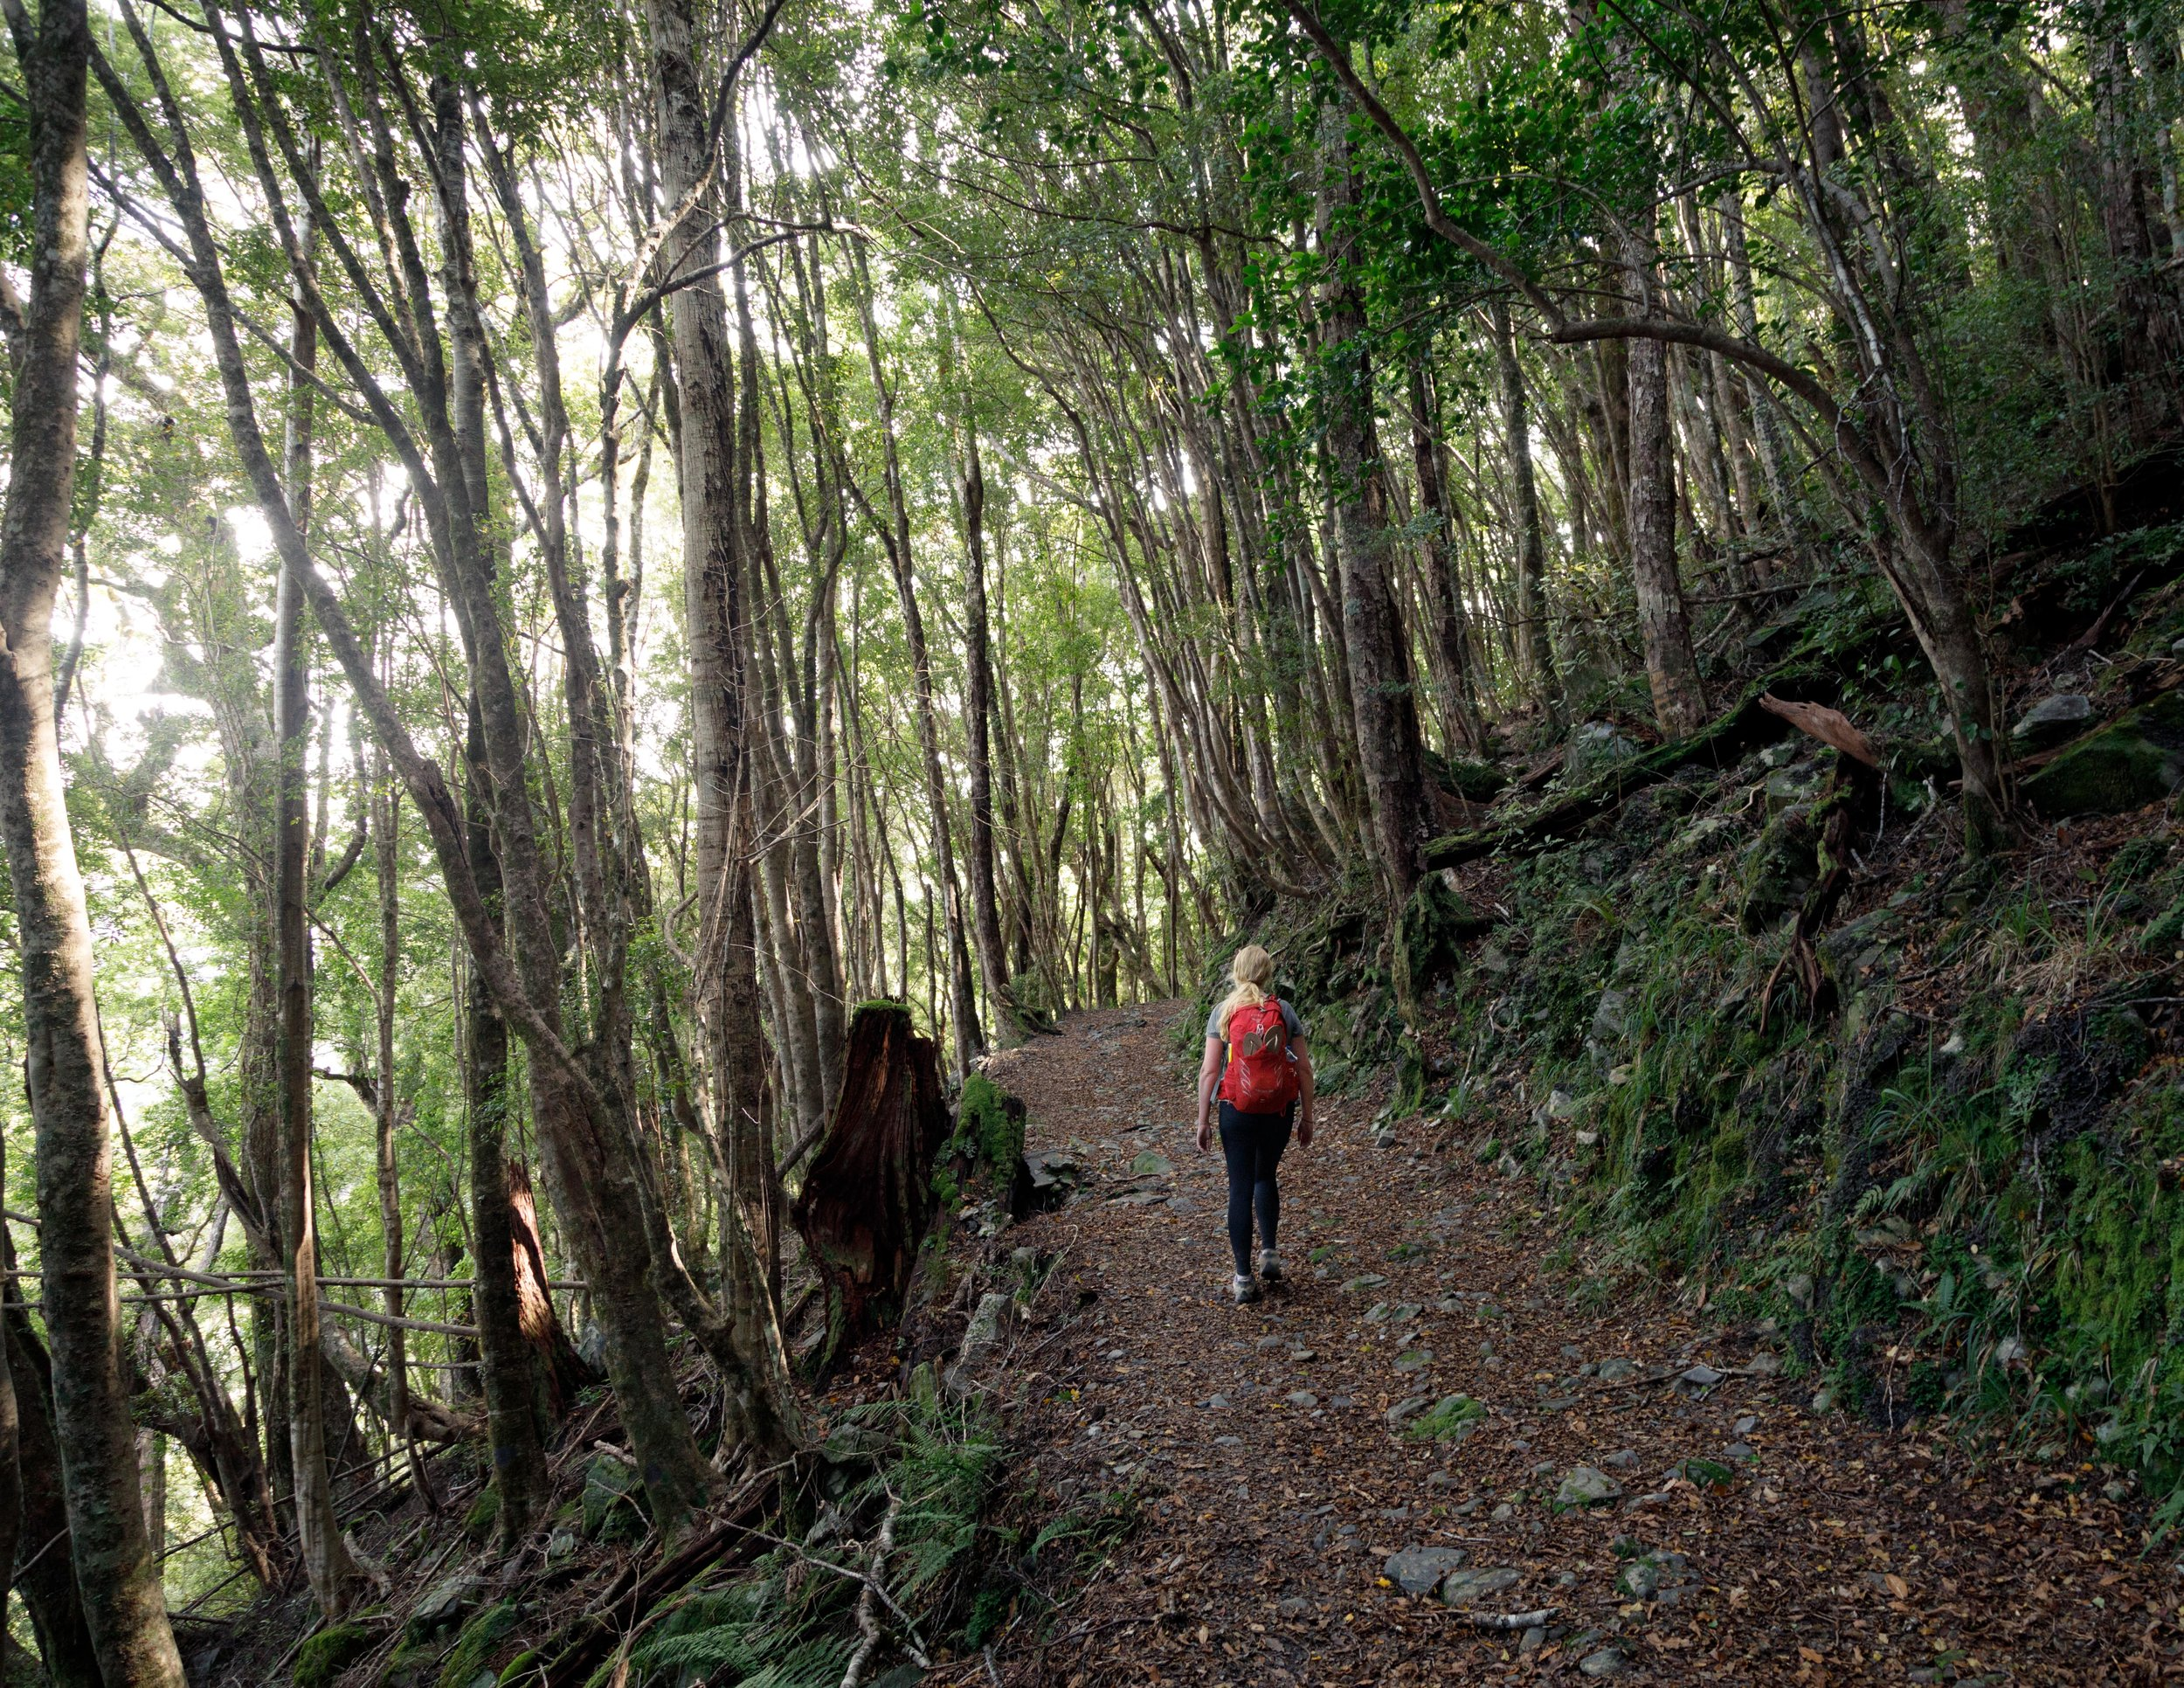 The Heaphy Track: Walking through the forest